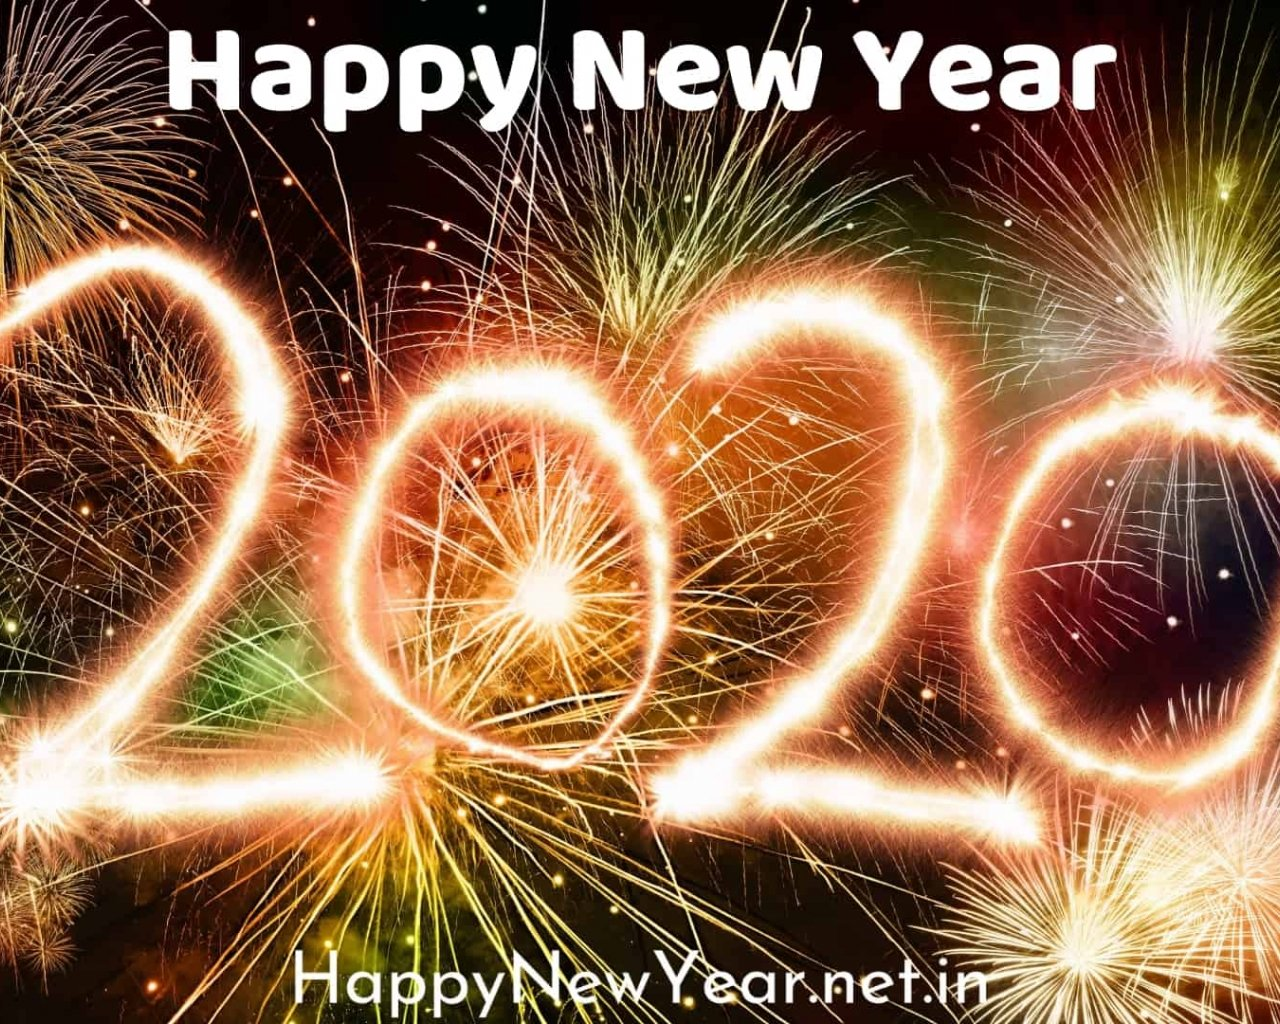 download Happy new year wishes for friends 2020 wallpaper 1280x1024